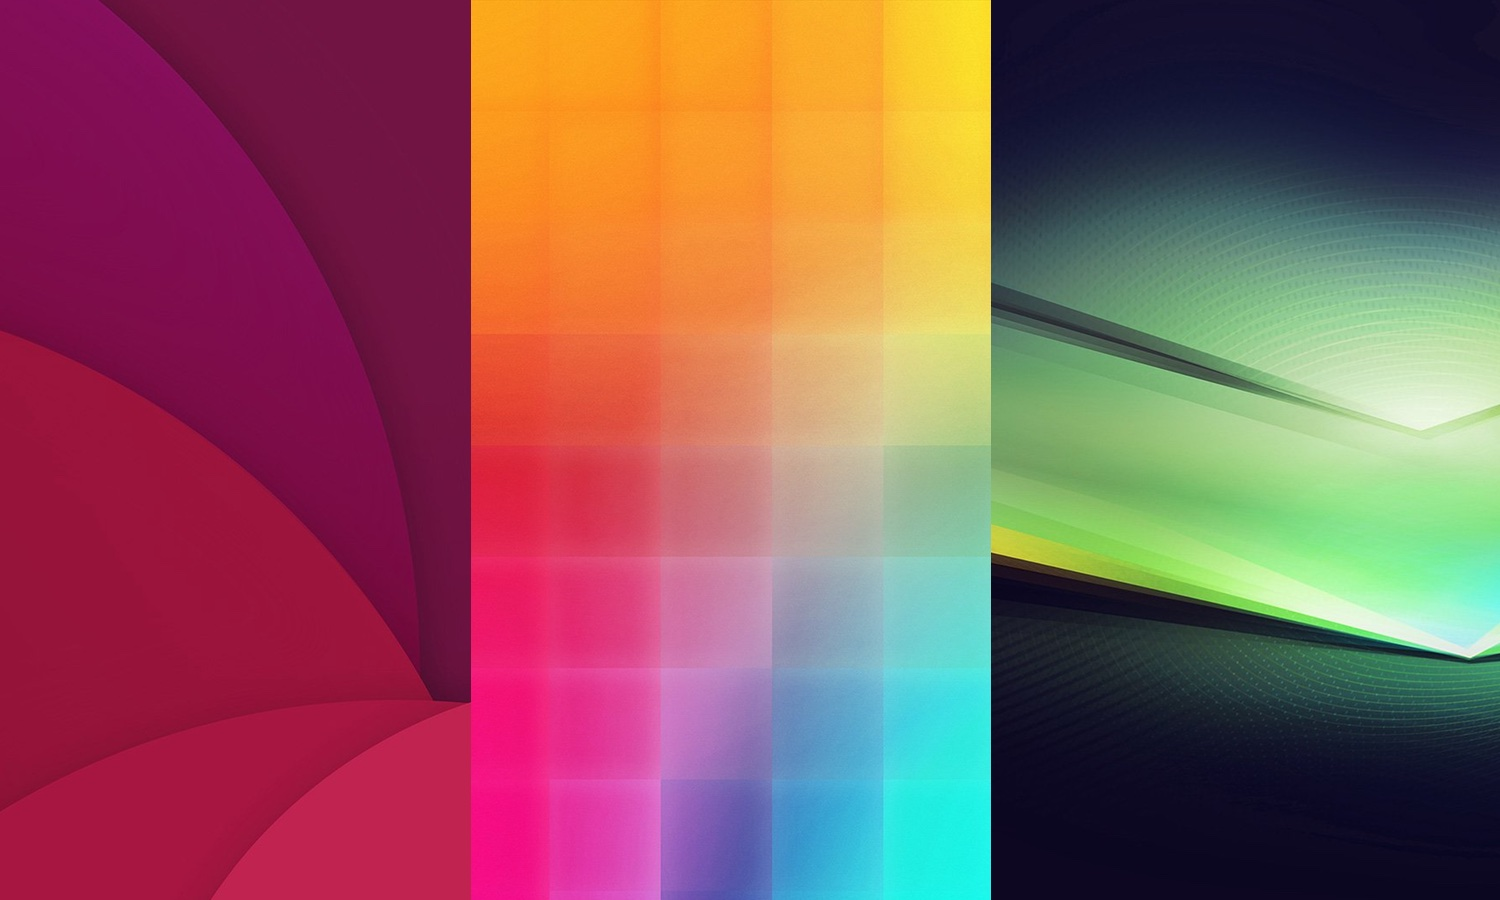 A selection of the best Wallpapers: abstract